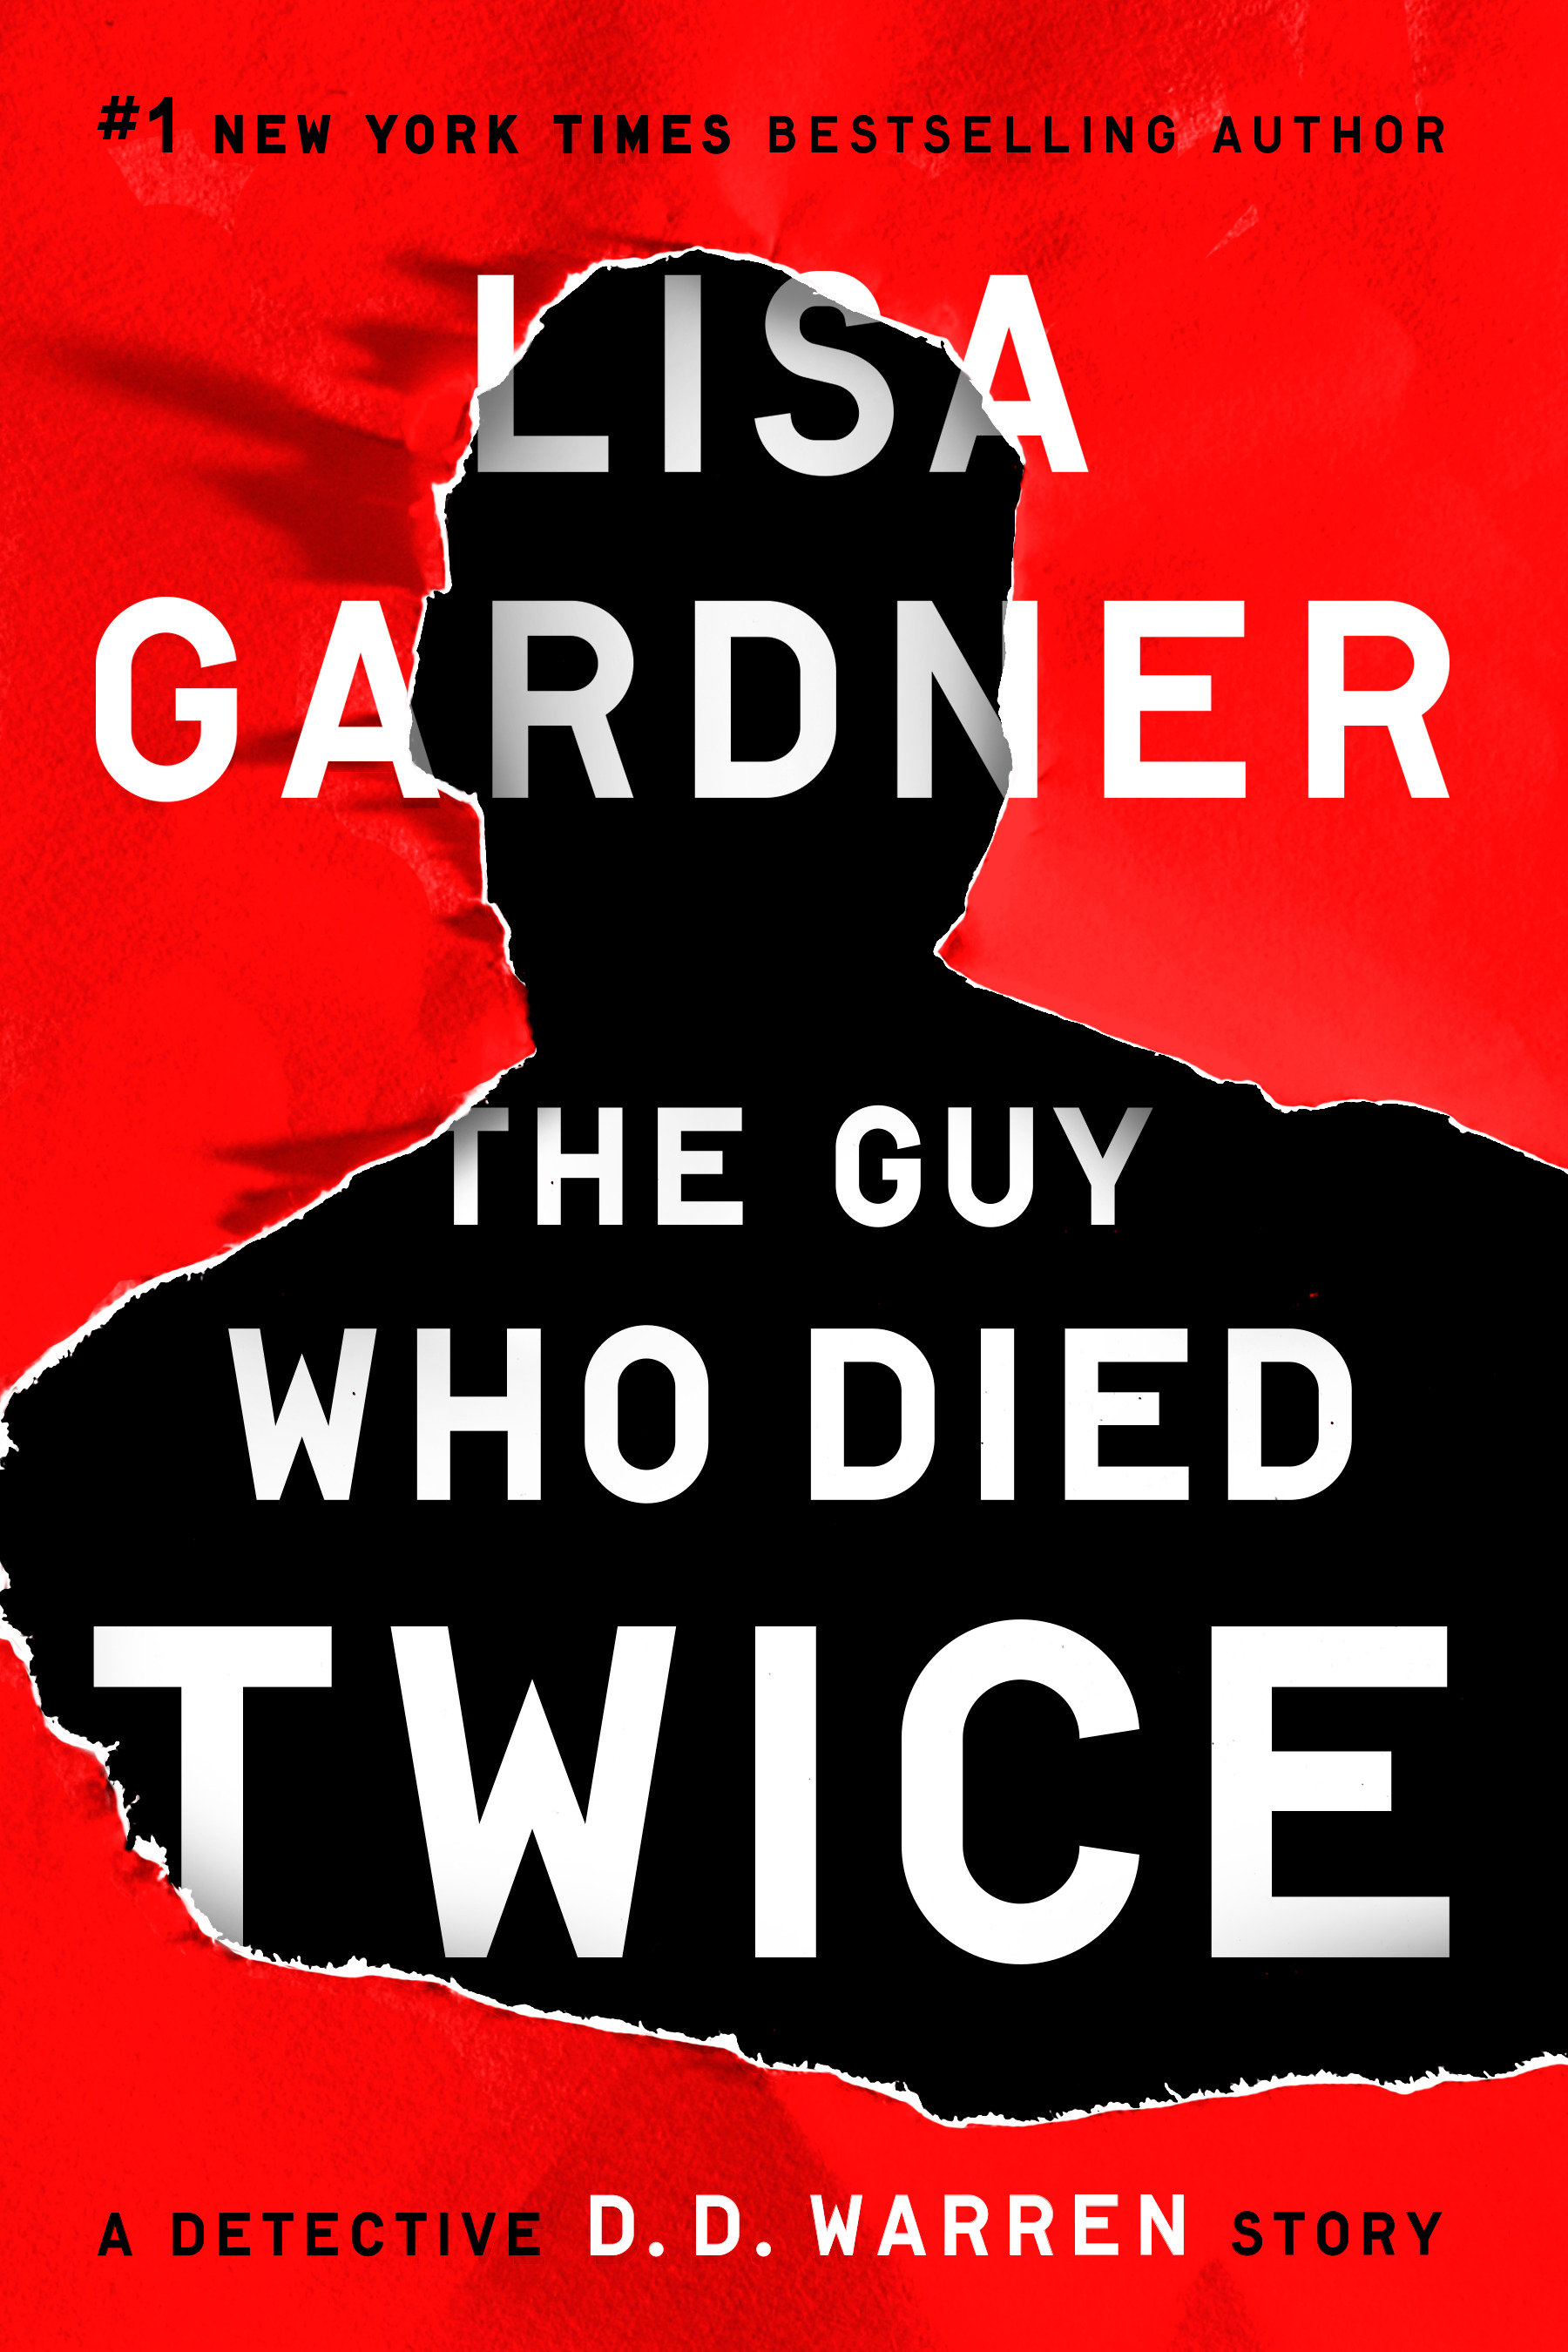 The Guy Who Died Twice A Detective D.D. Warren Story cover image